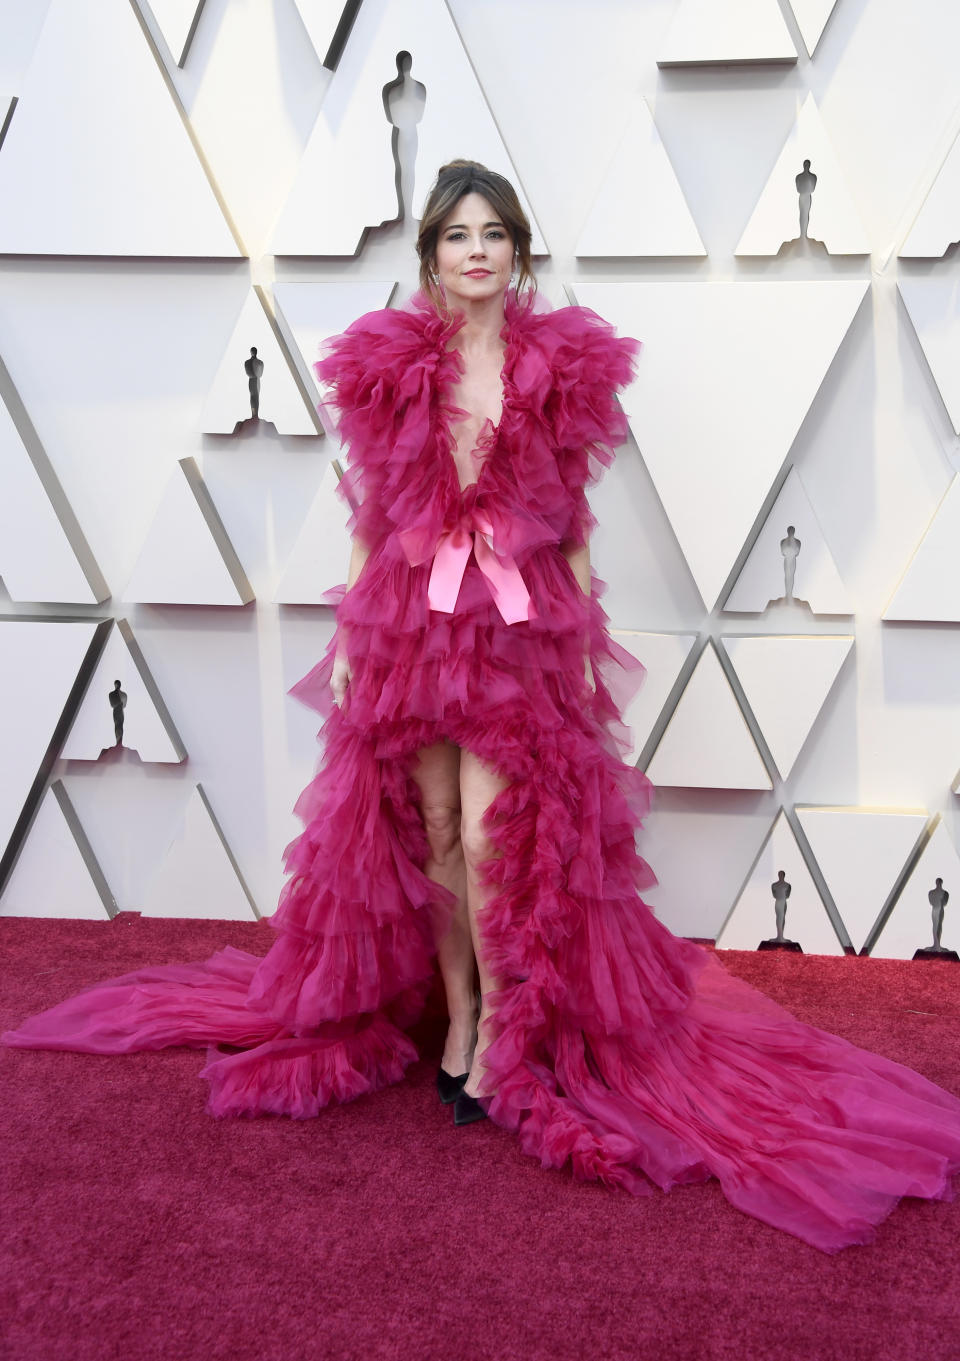 """<p>Cardellini's film """"Green Book"""" may have taken home the award for Best Picture in 2019, but the actress's ruffled fuchsia gown was an ill-fitting choice that garnered attention for all the wrong reasons.</p>"""